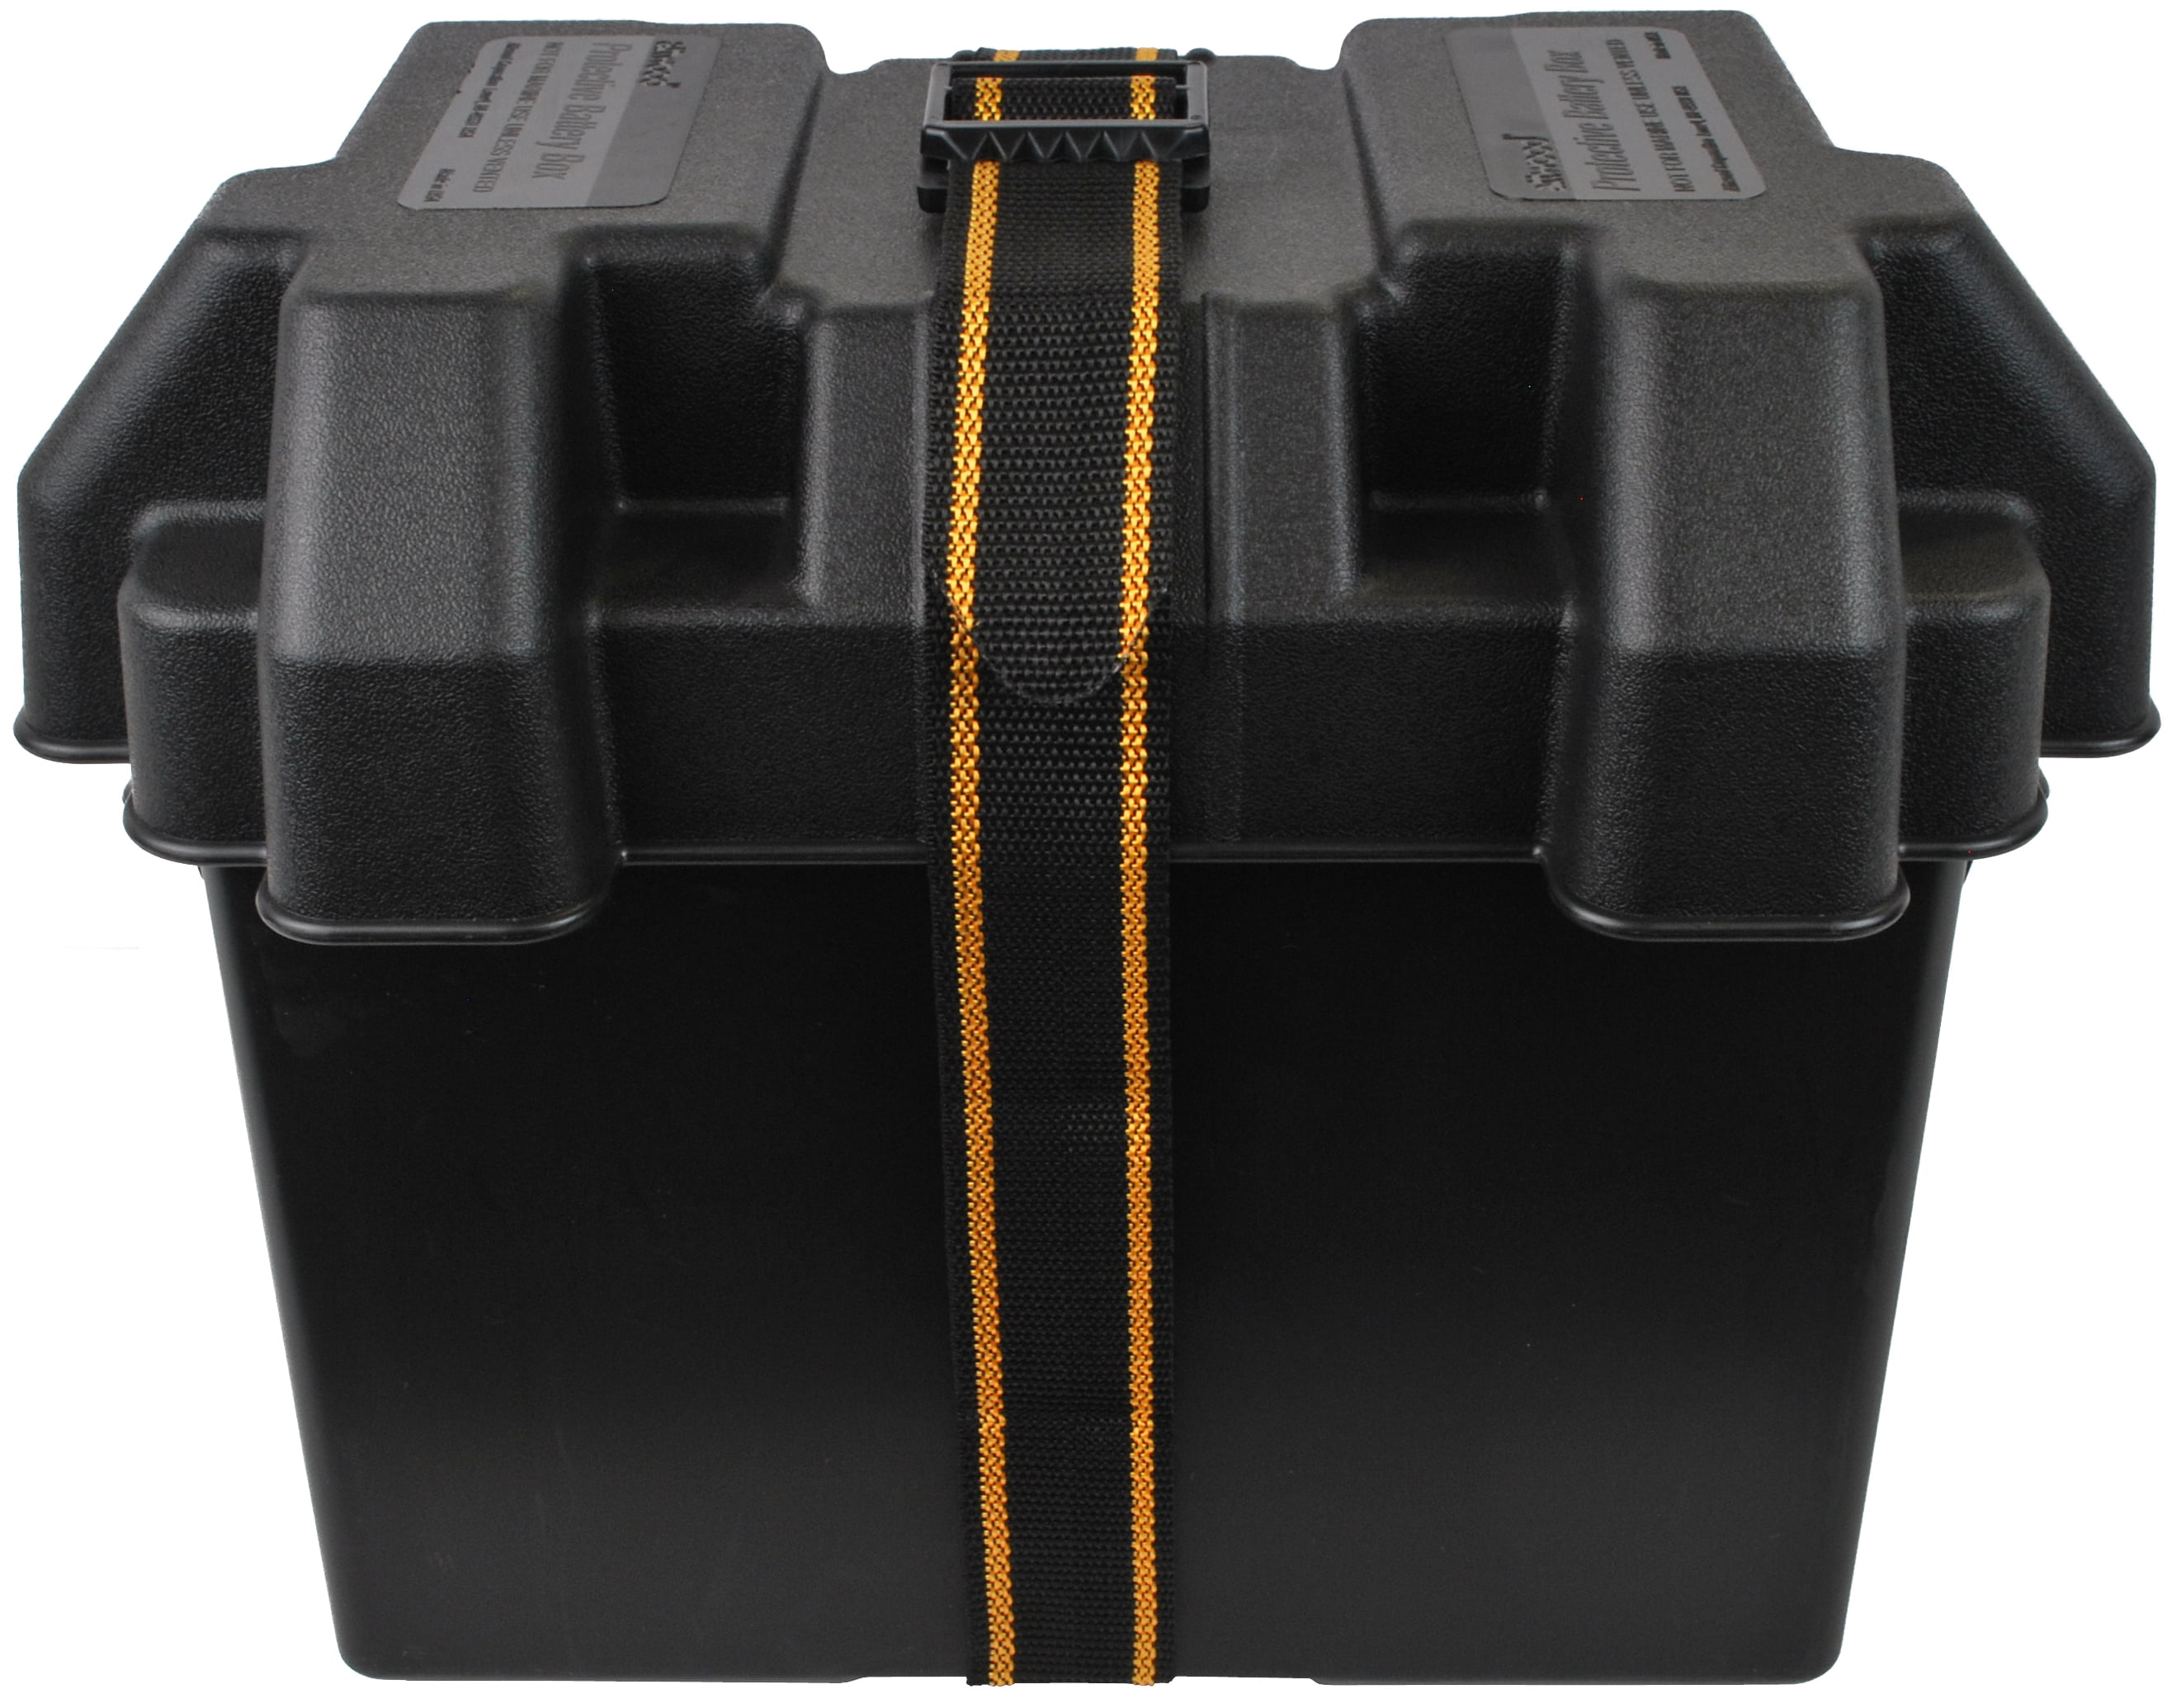 Group 24 Camco 55362 Standard Battery Box